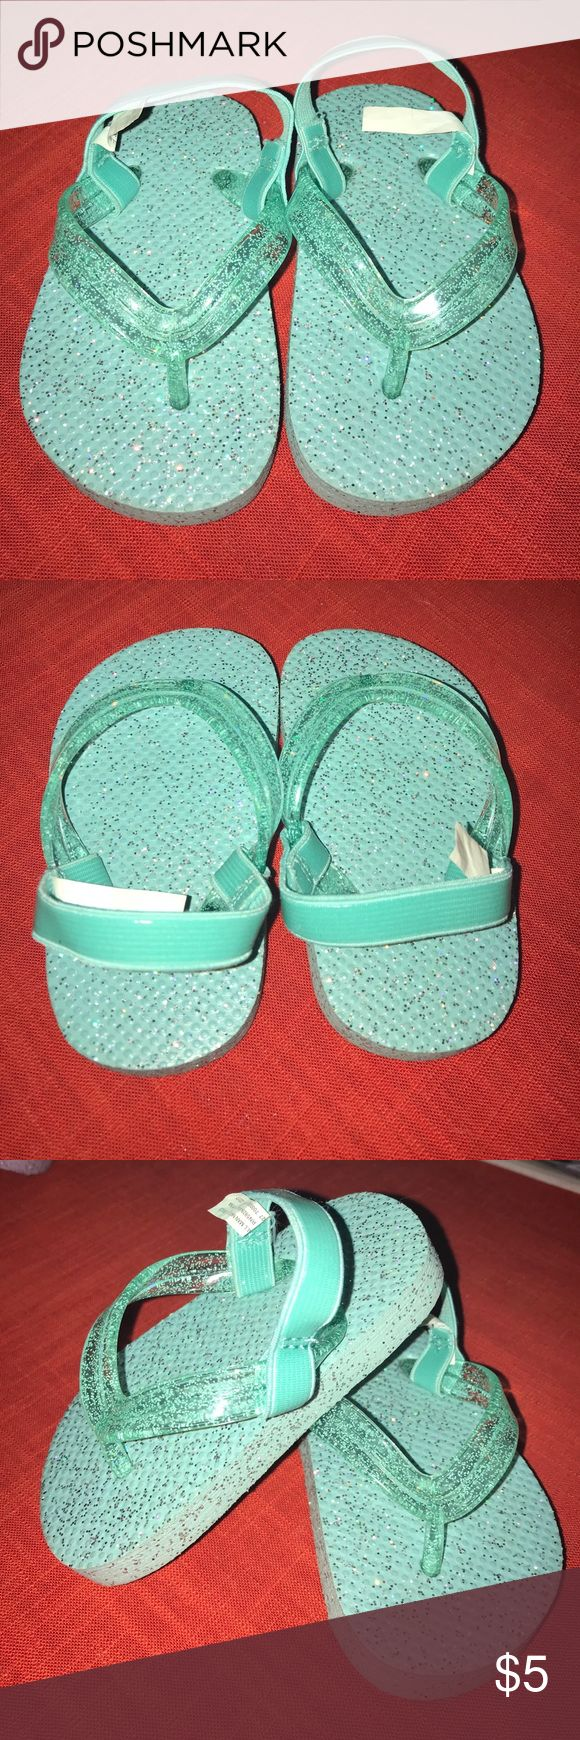 Teal Little Girls Sandals Teal sandals. Easy slip on. Strap goes around the back of the ankle. Never worn. Size 4/5 Shoes Sandals & Flip Flops